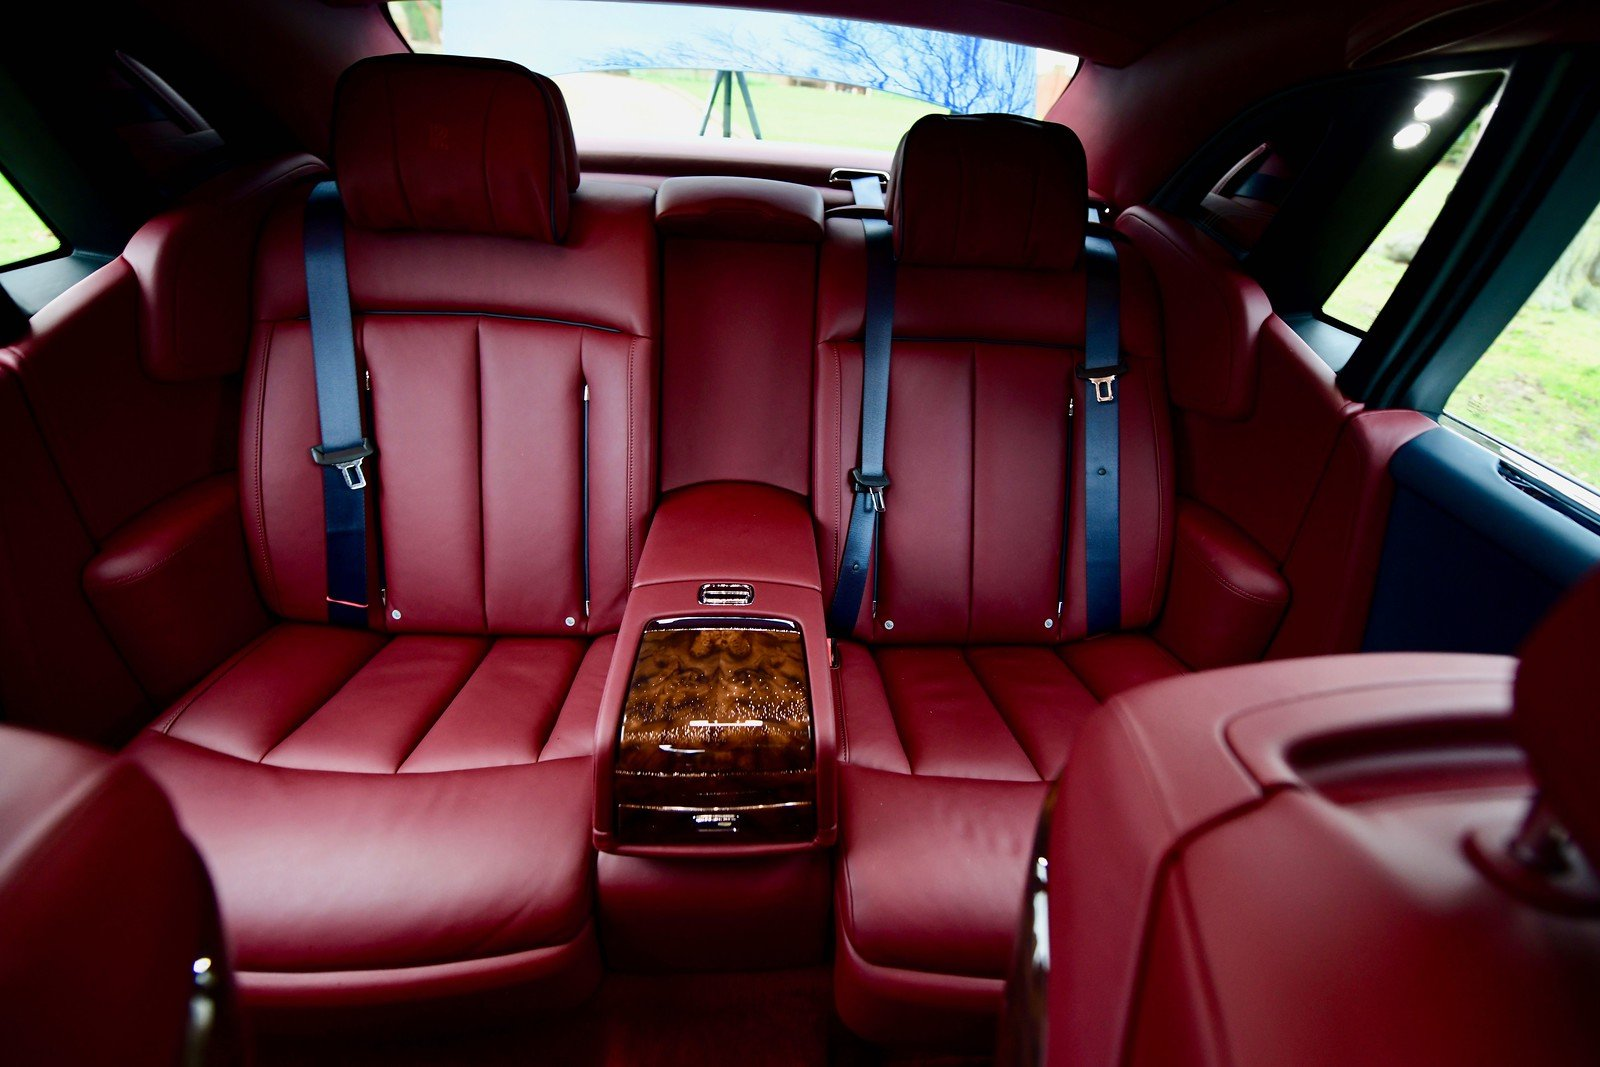 2019 Rolls Royce Phantom 8 For Sale (picture 5 of 6)